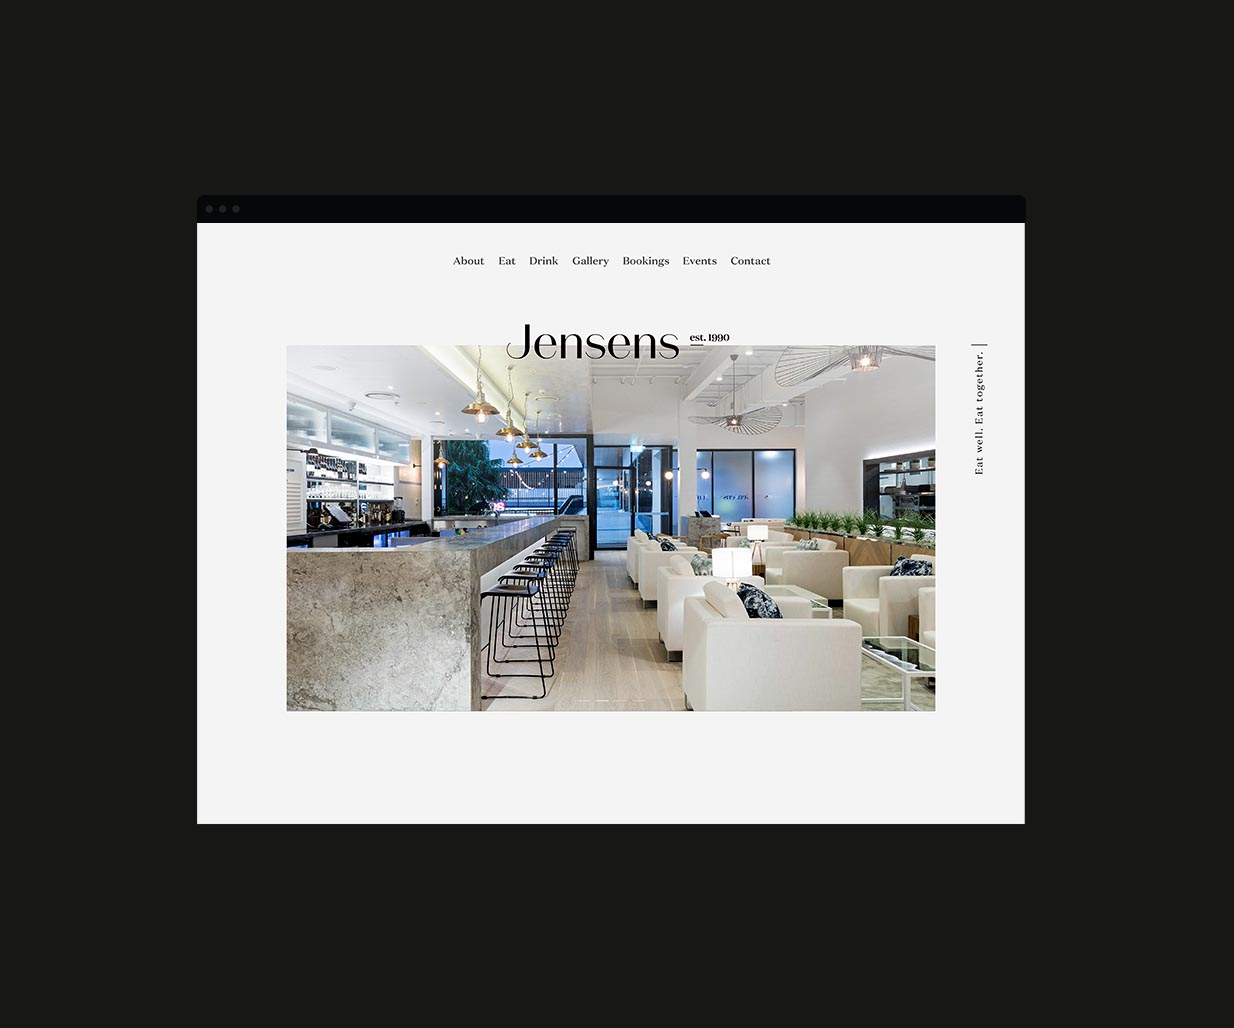 Brand & Website Design project in Sydney for hospitality venue Jensens Restaurant, a leader in the food service industry of Australia, image B